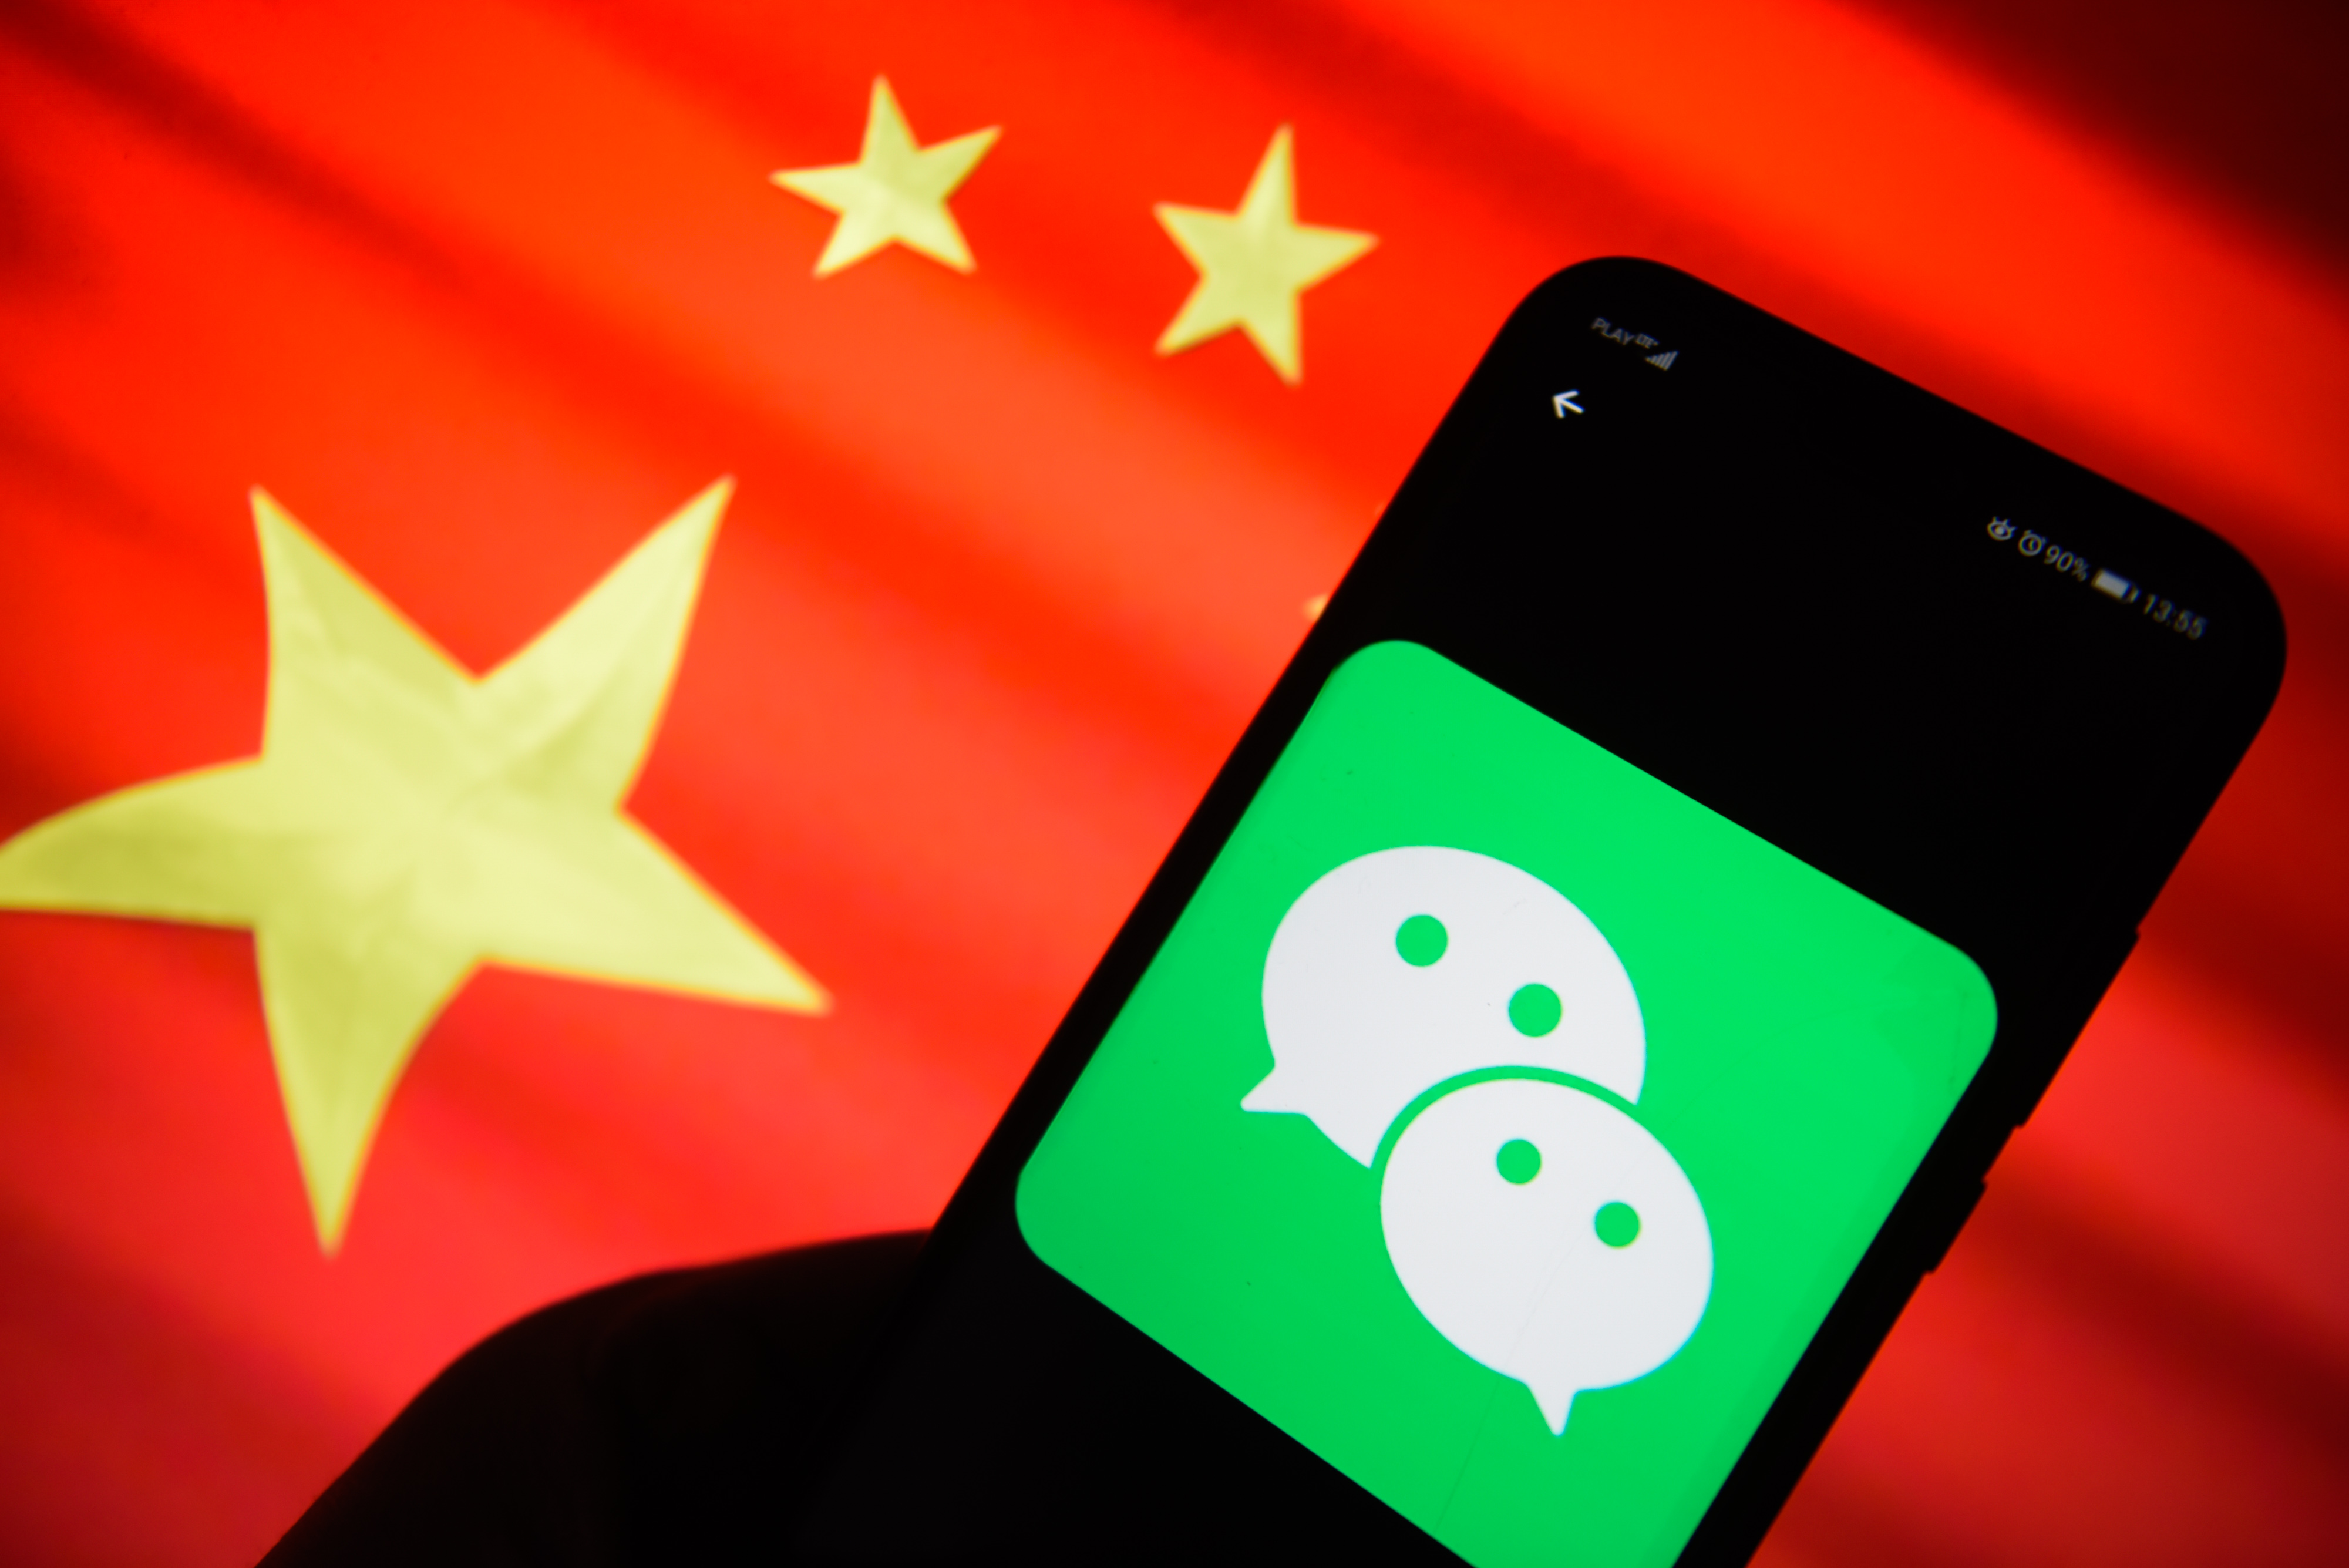 The WeChat logo is seen on a mobile phone with China's flag in the background.